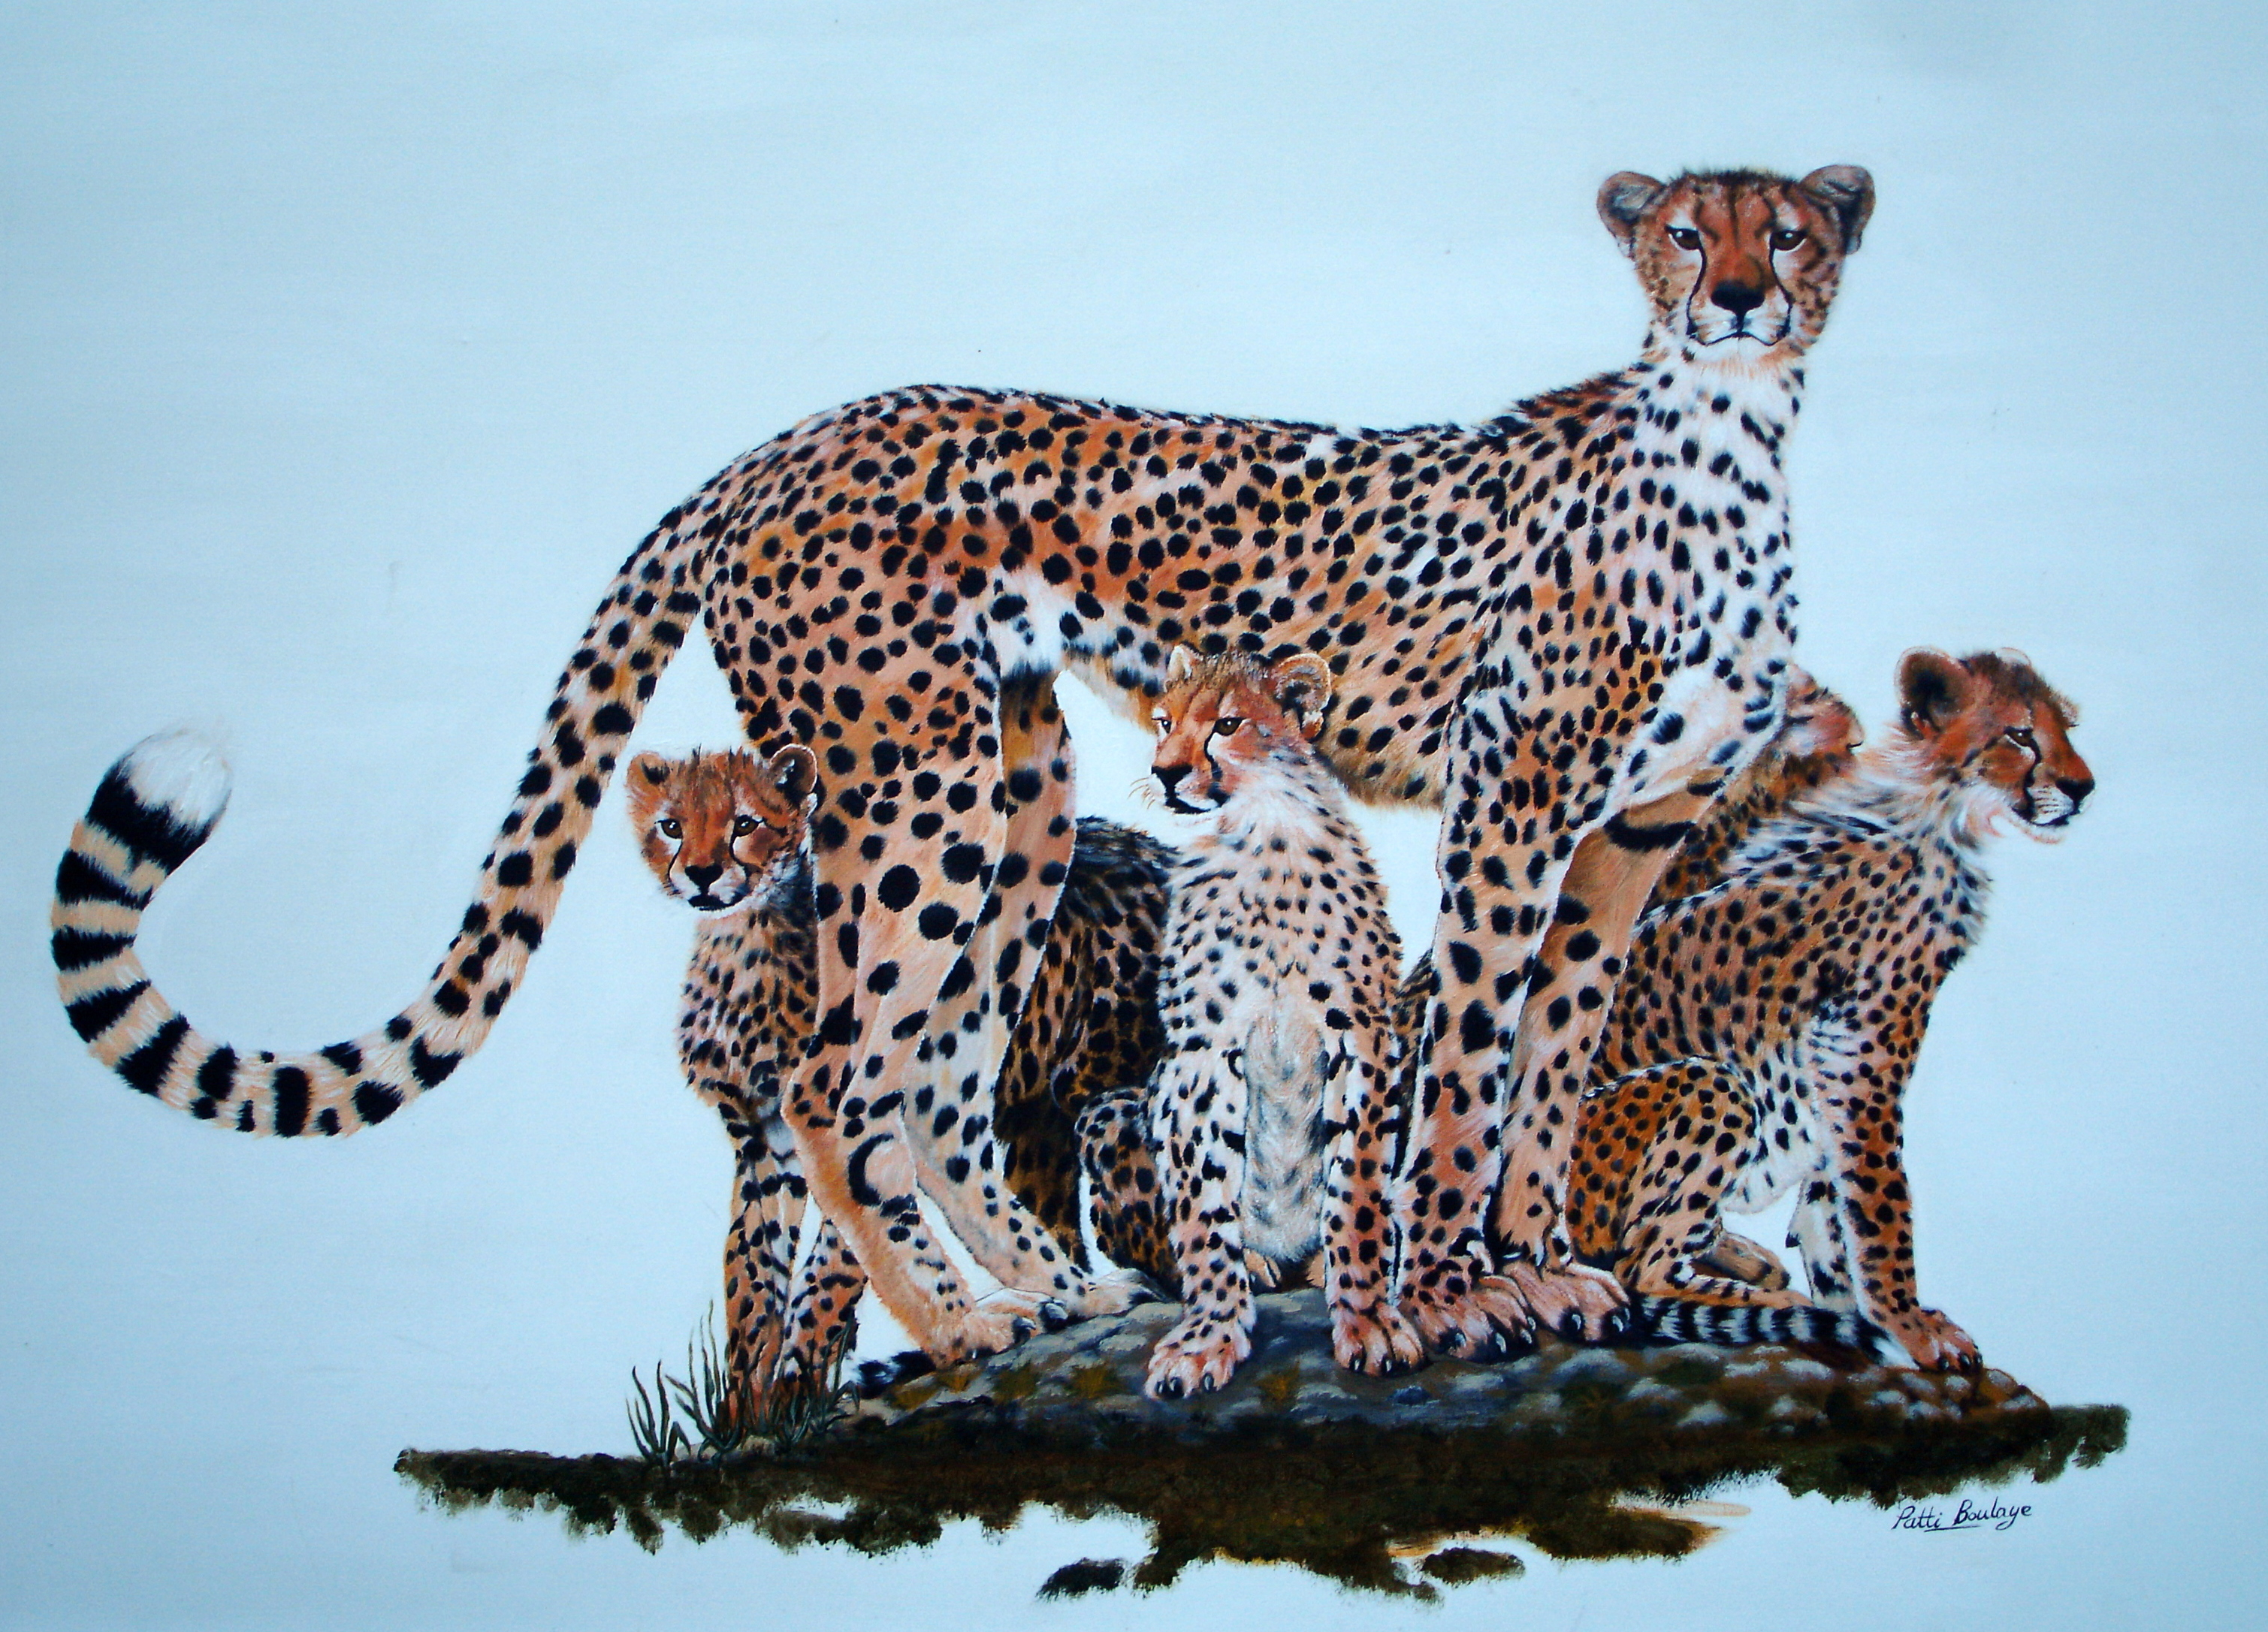 Family_of_Cheetahs_4ft_by_8ft